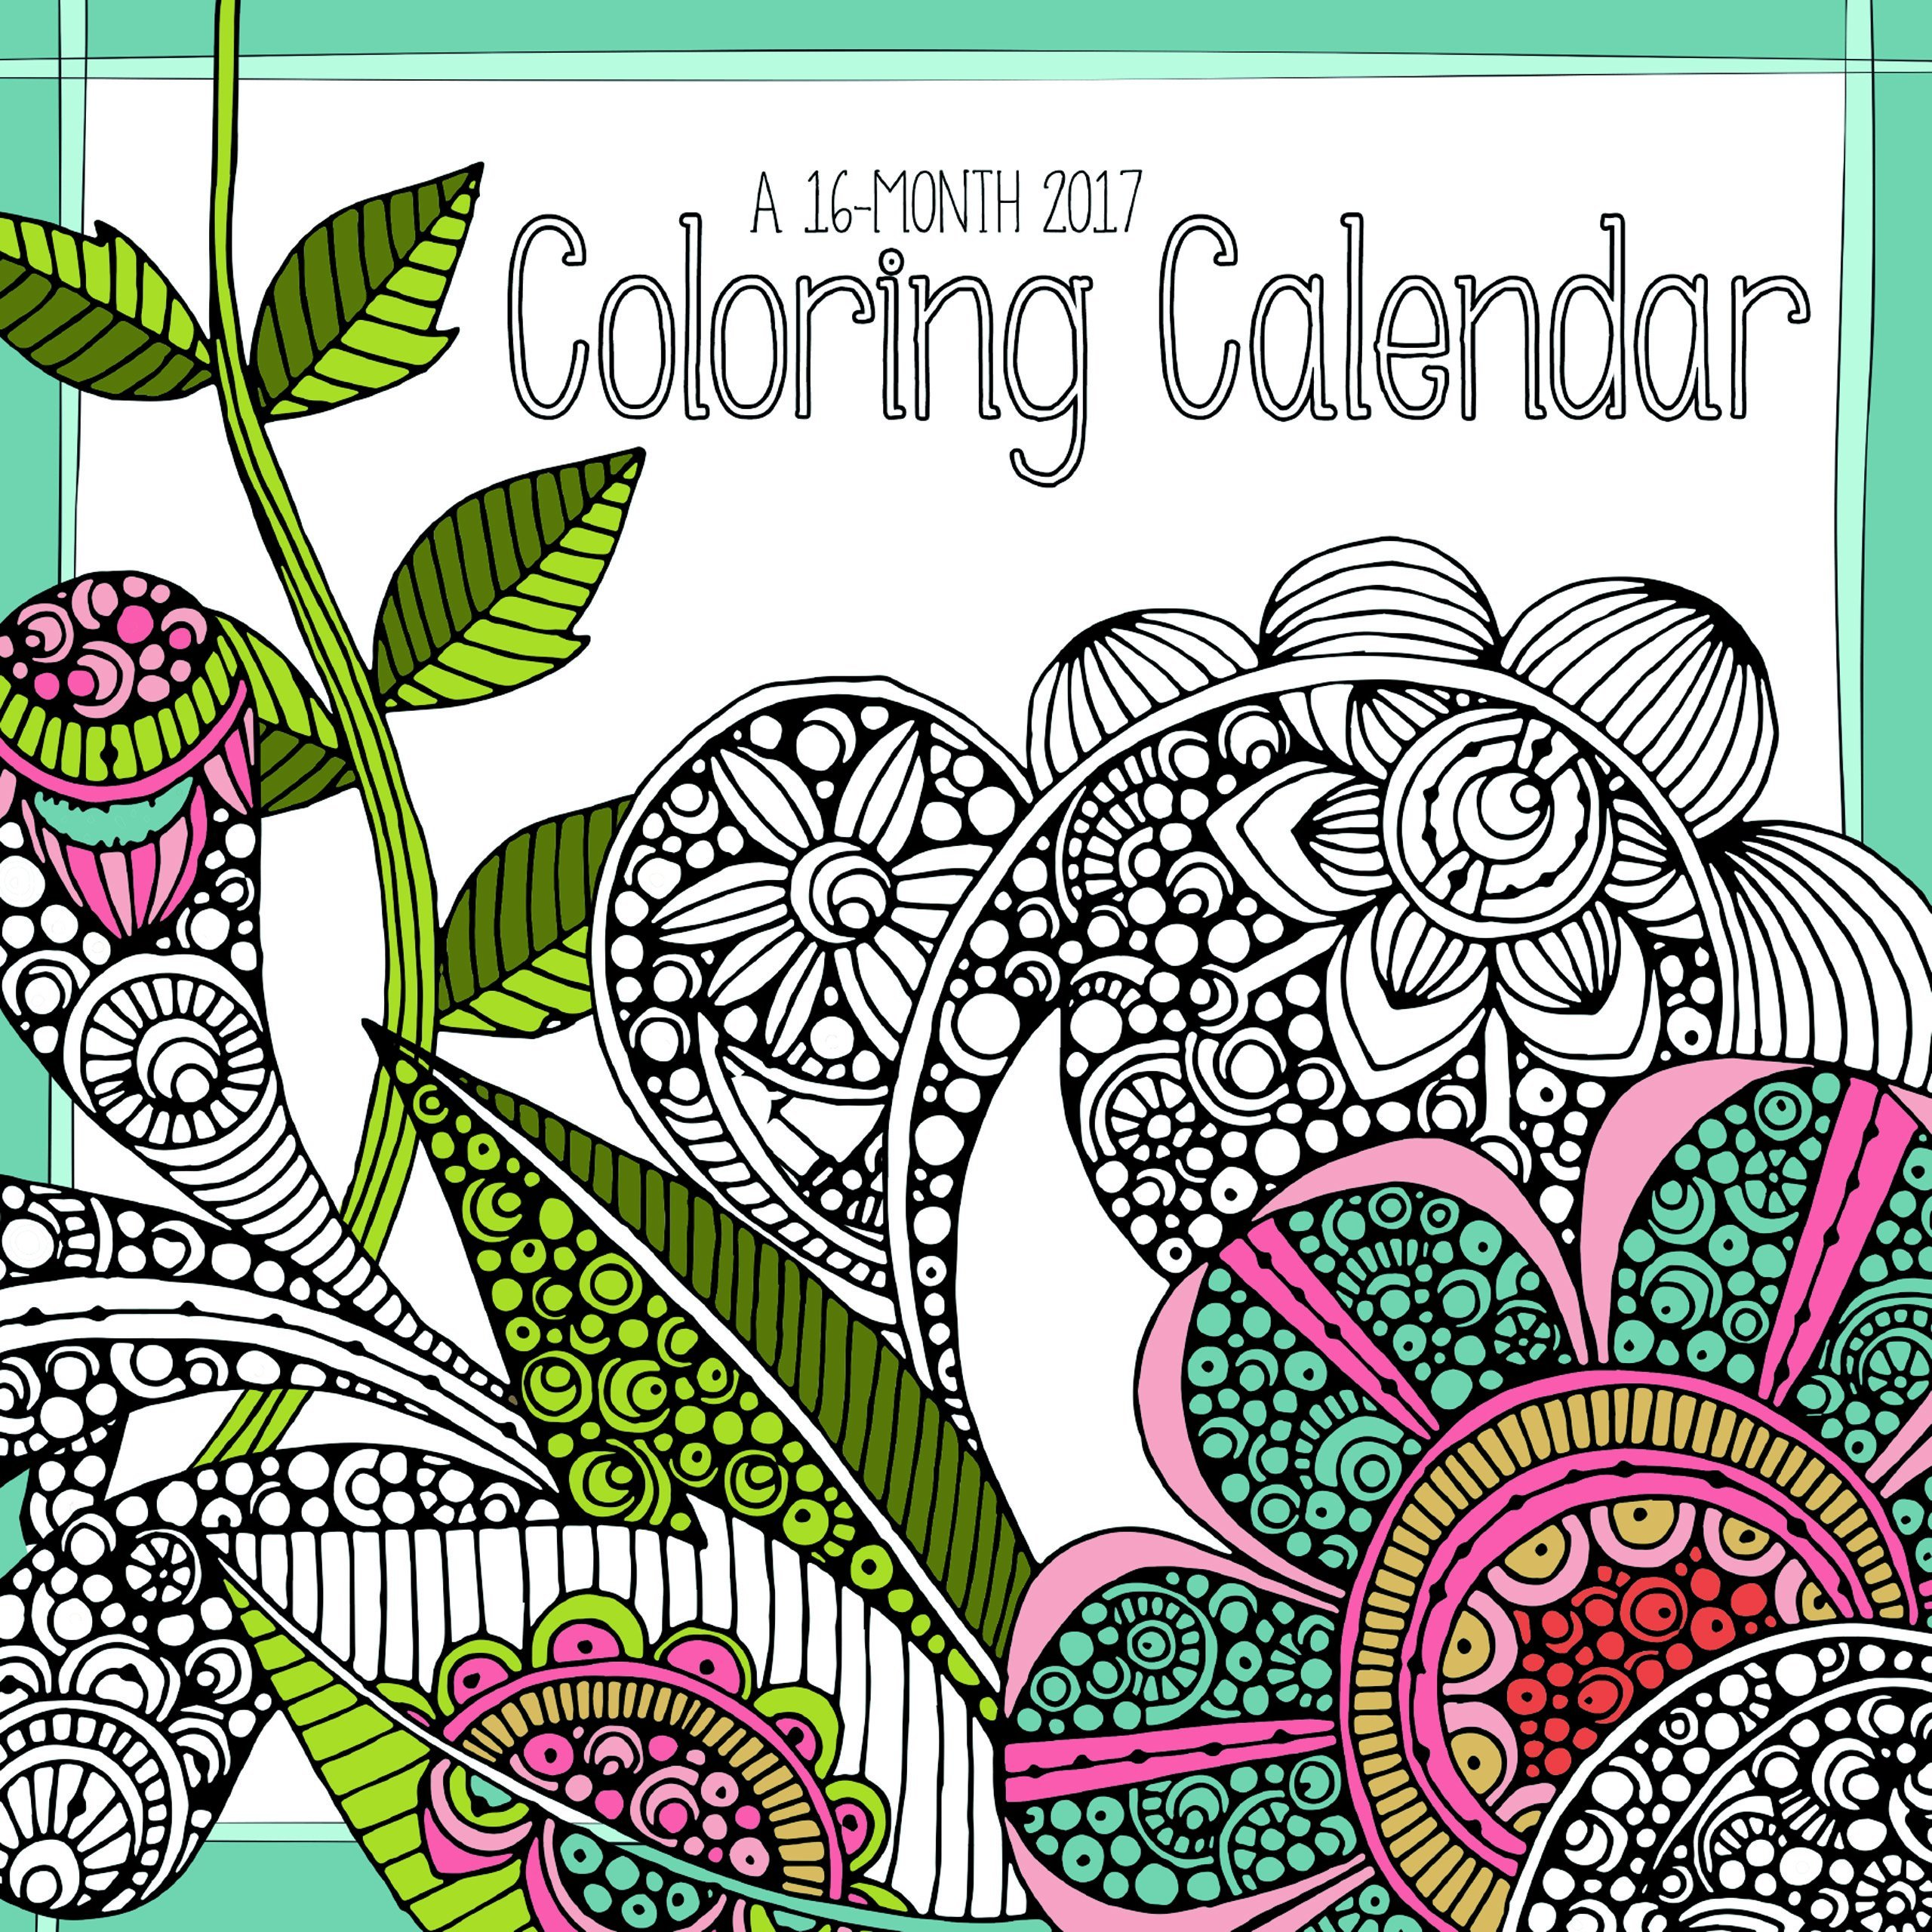 Trends International 2017 Wall Calendar, September 2016 - December ...